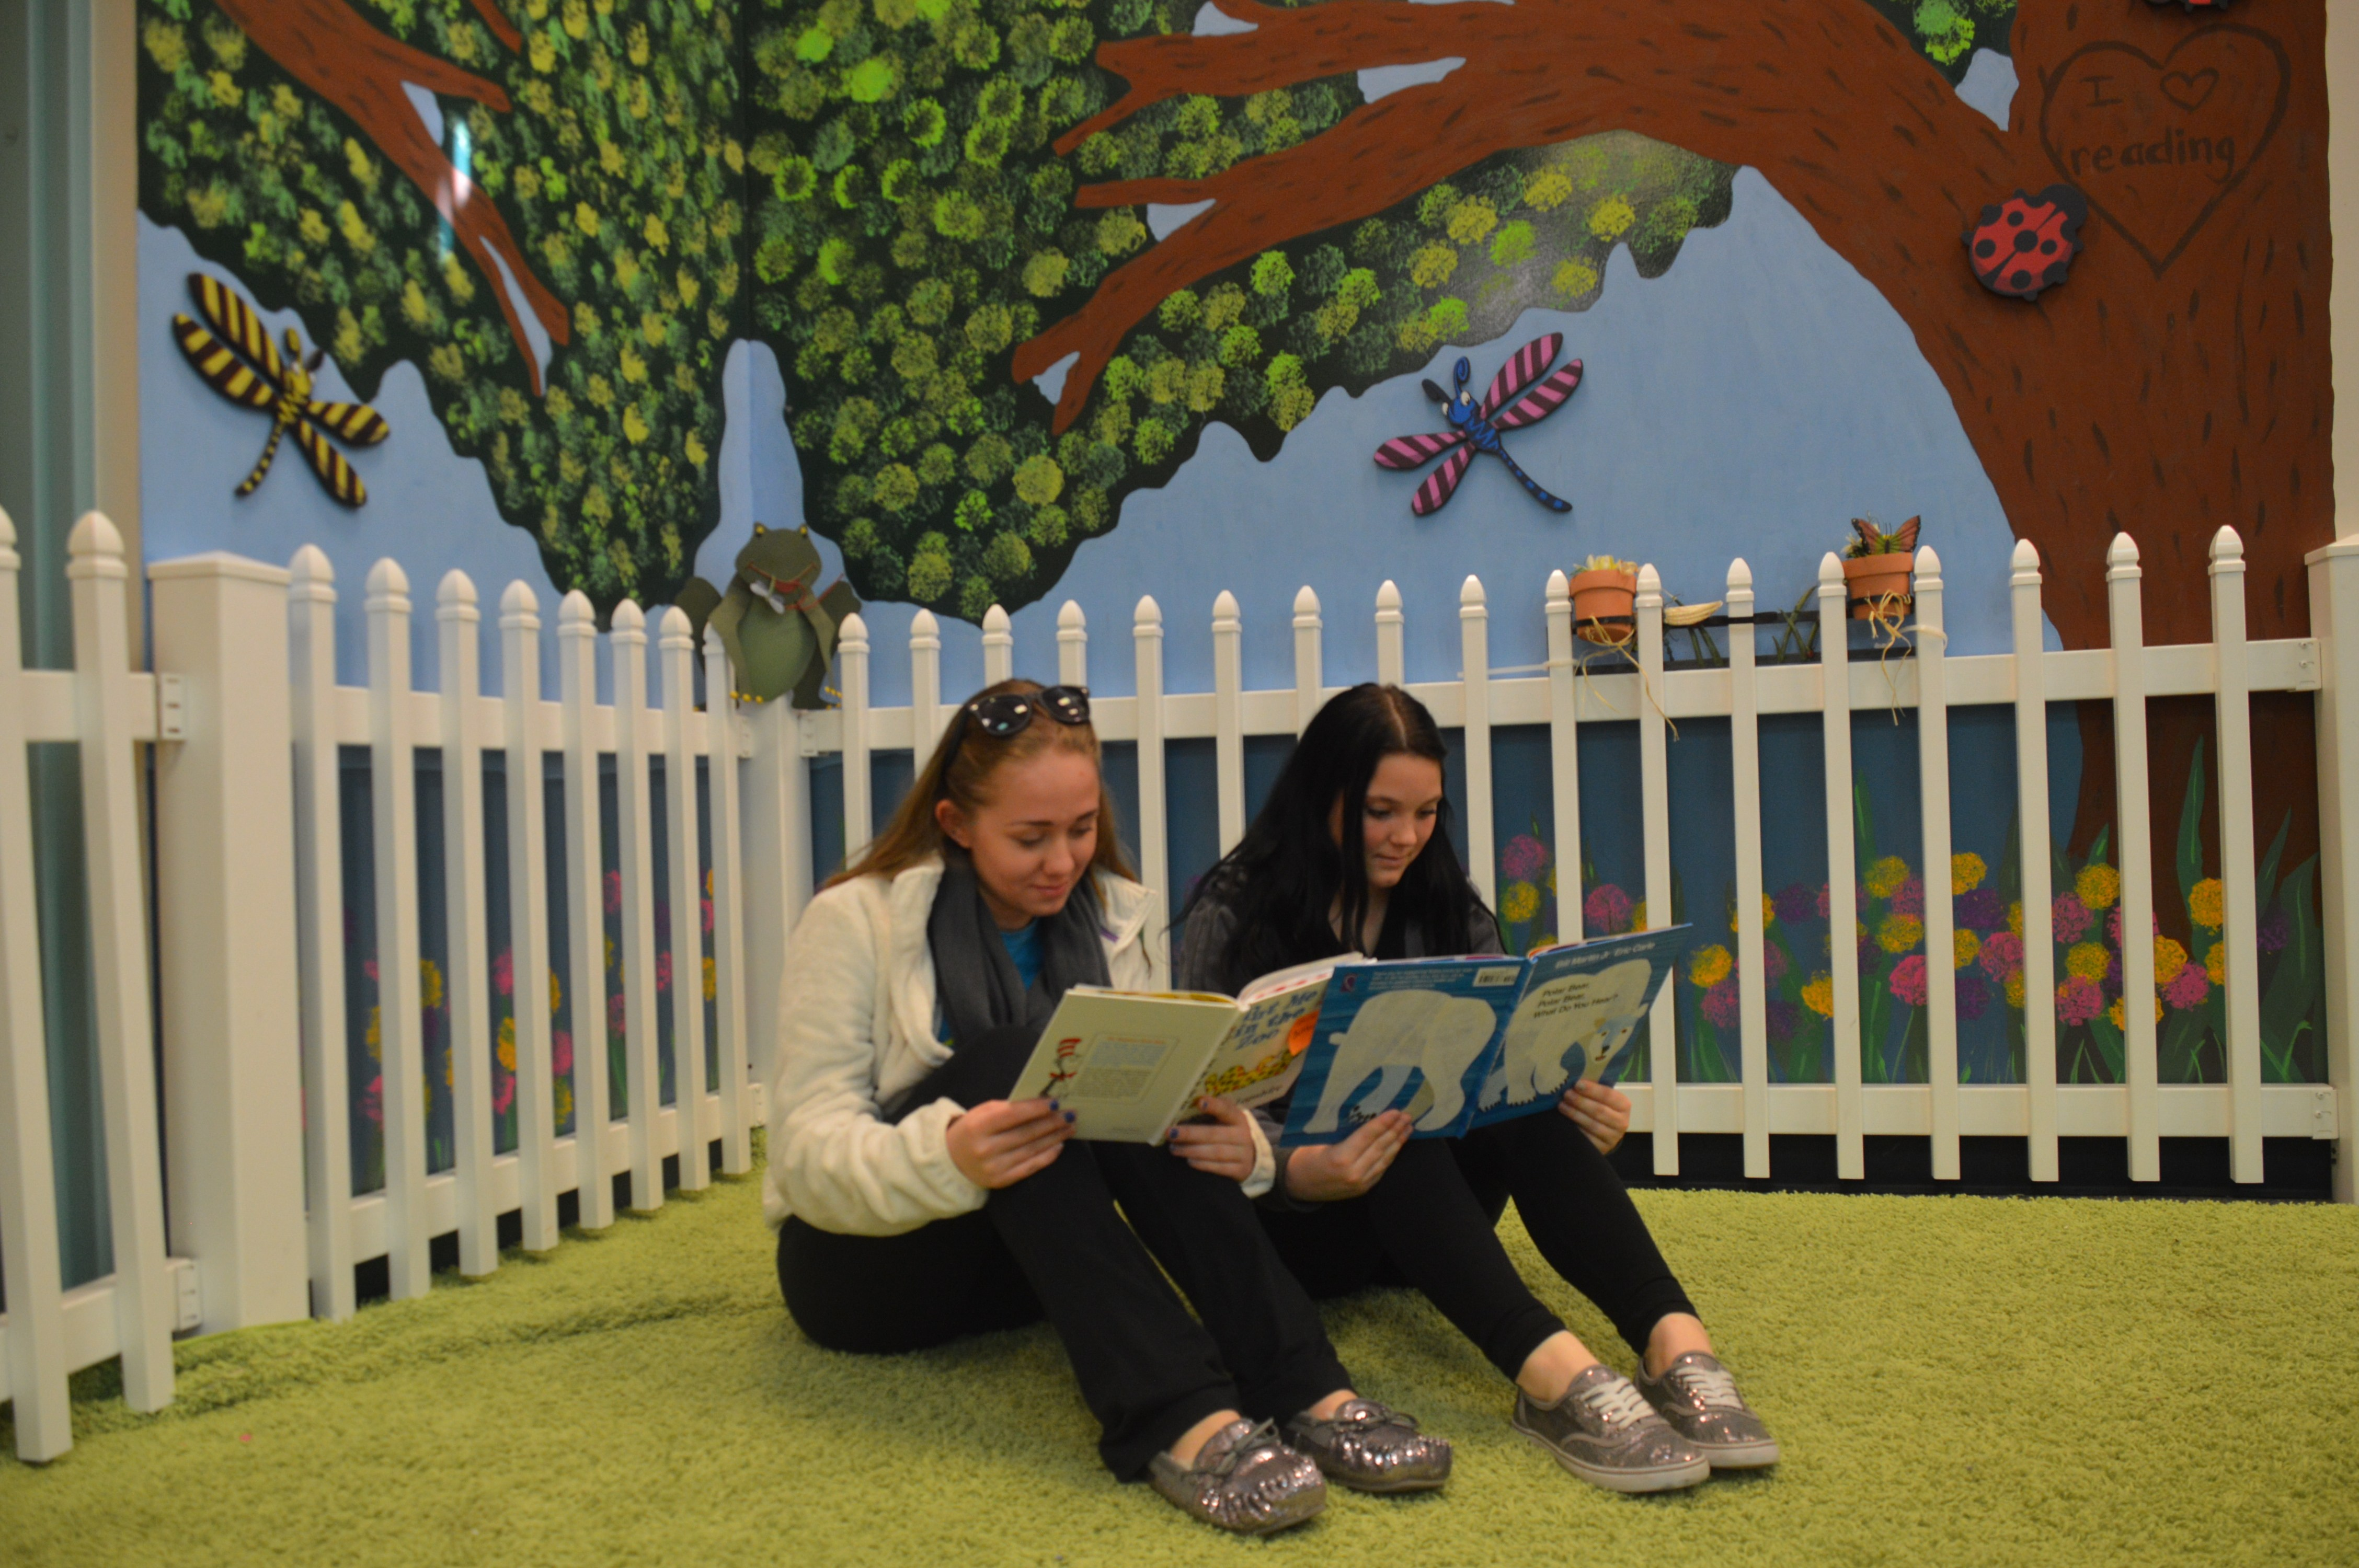 Brianna Sullivan '16 and Kym Shaffer '15 select their books that they will read to elementary students.